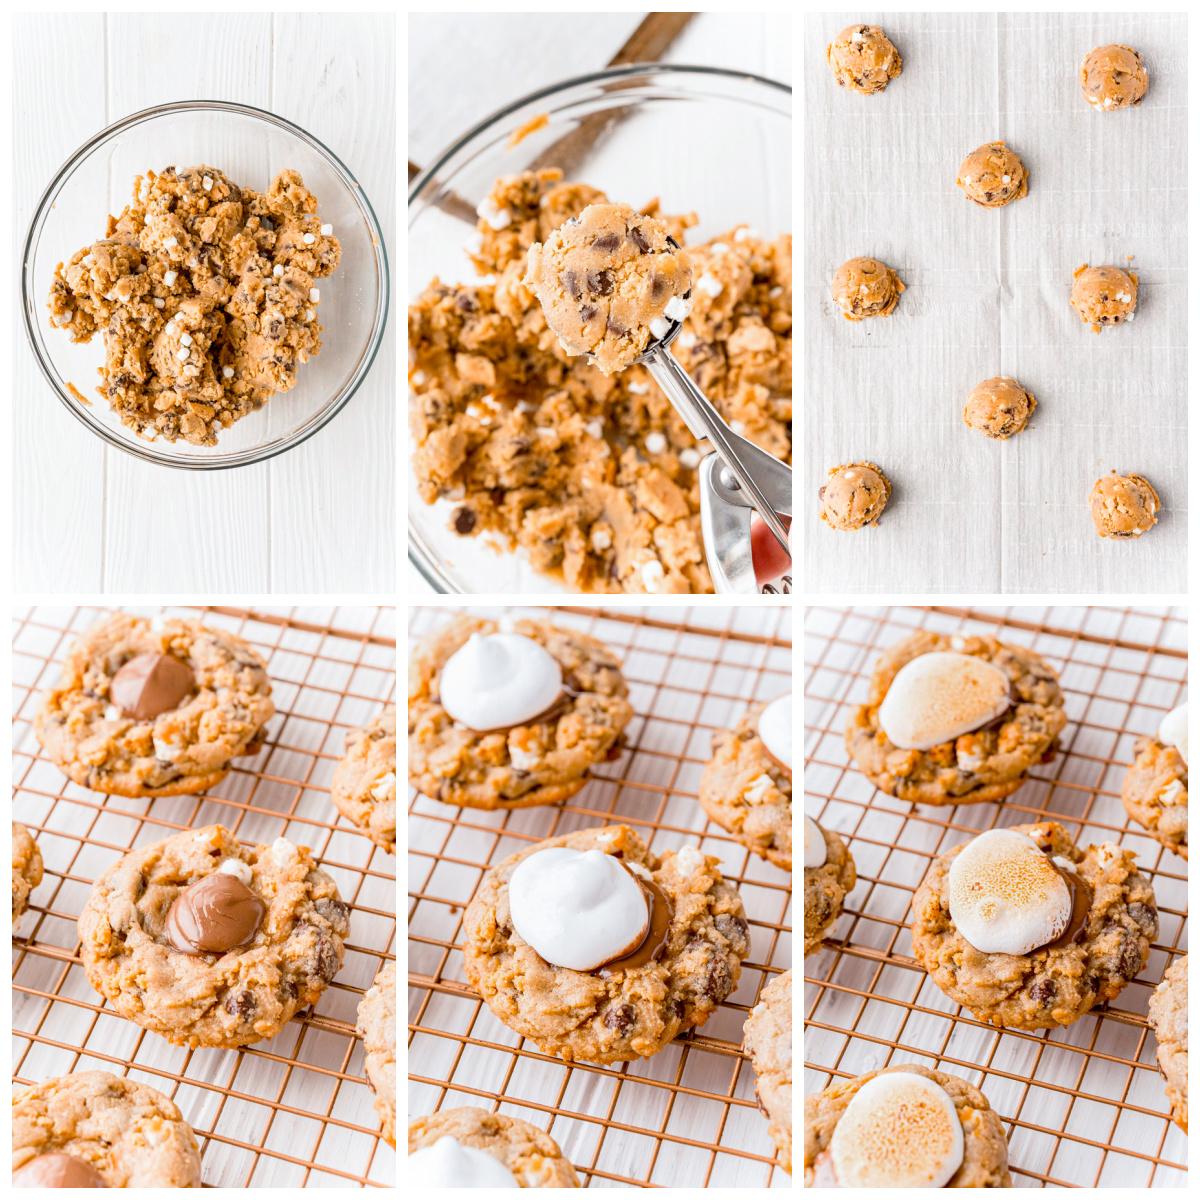 Step by step photos on how to make S'mores Cookies